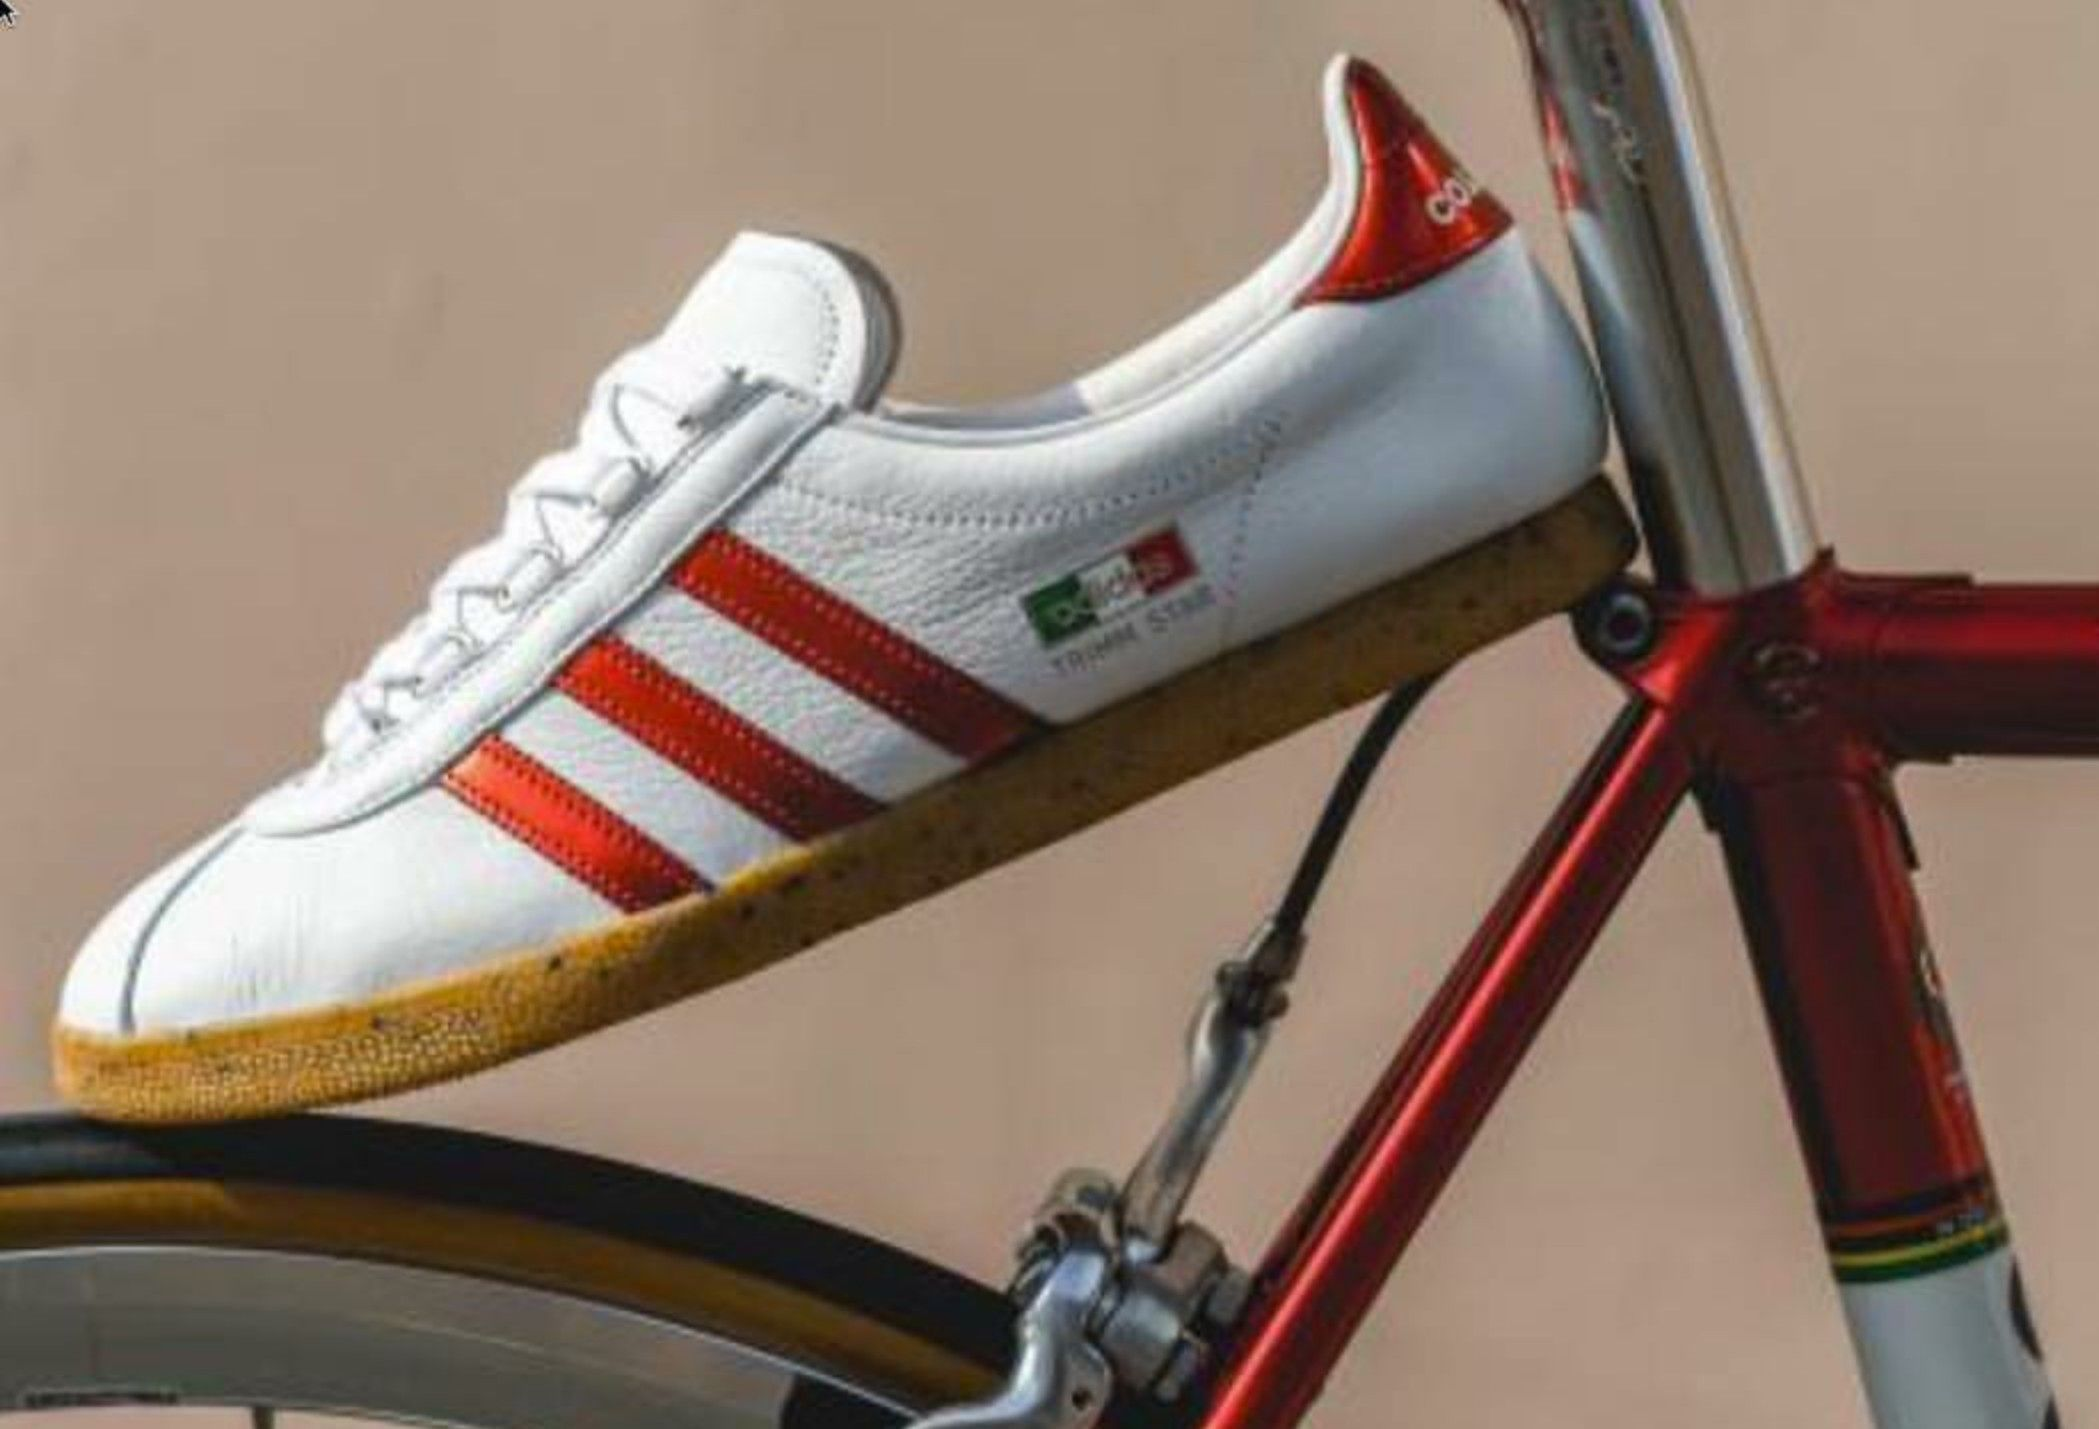 new arrival 209cb 670d9 Adidas Trimm Star x Colnago due for release in 2019.